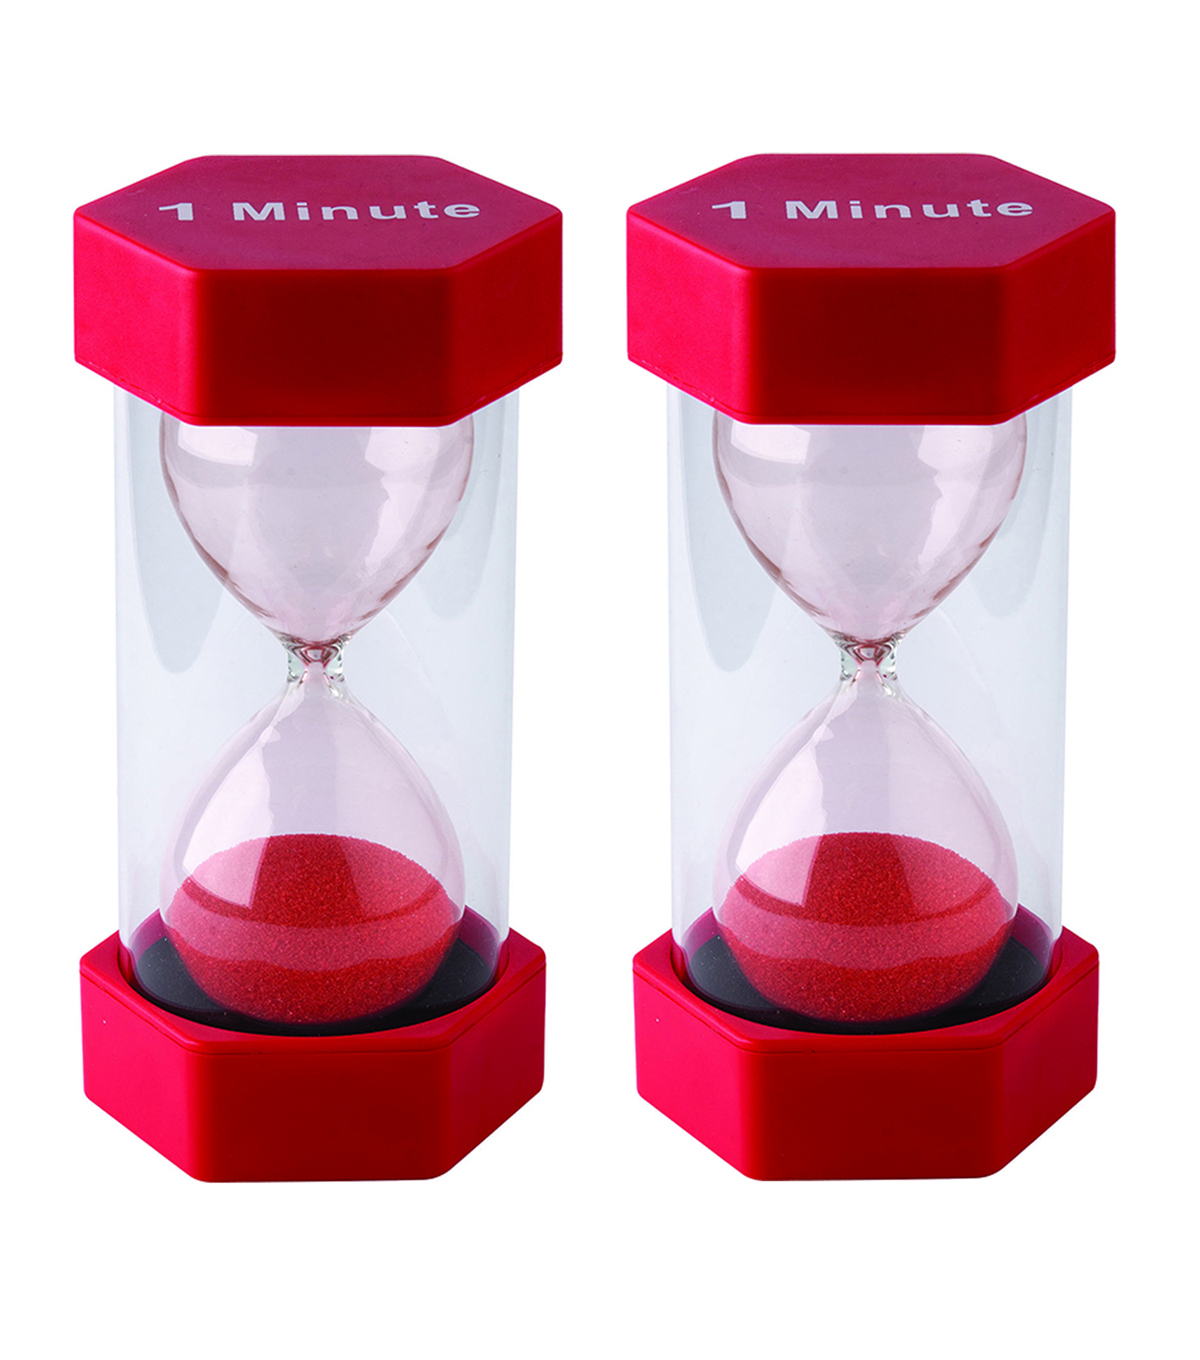 Teacher Created Resources 1 Minute Sand Timer - Large, Pack of 2